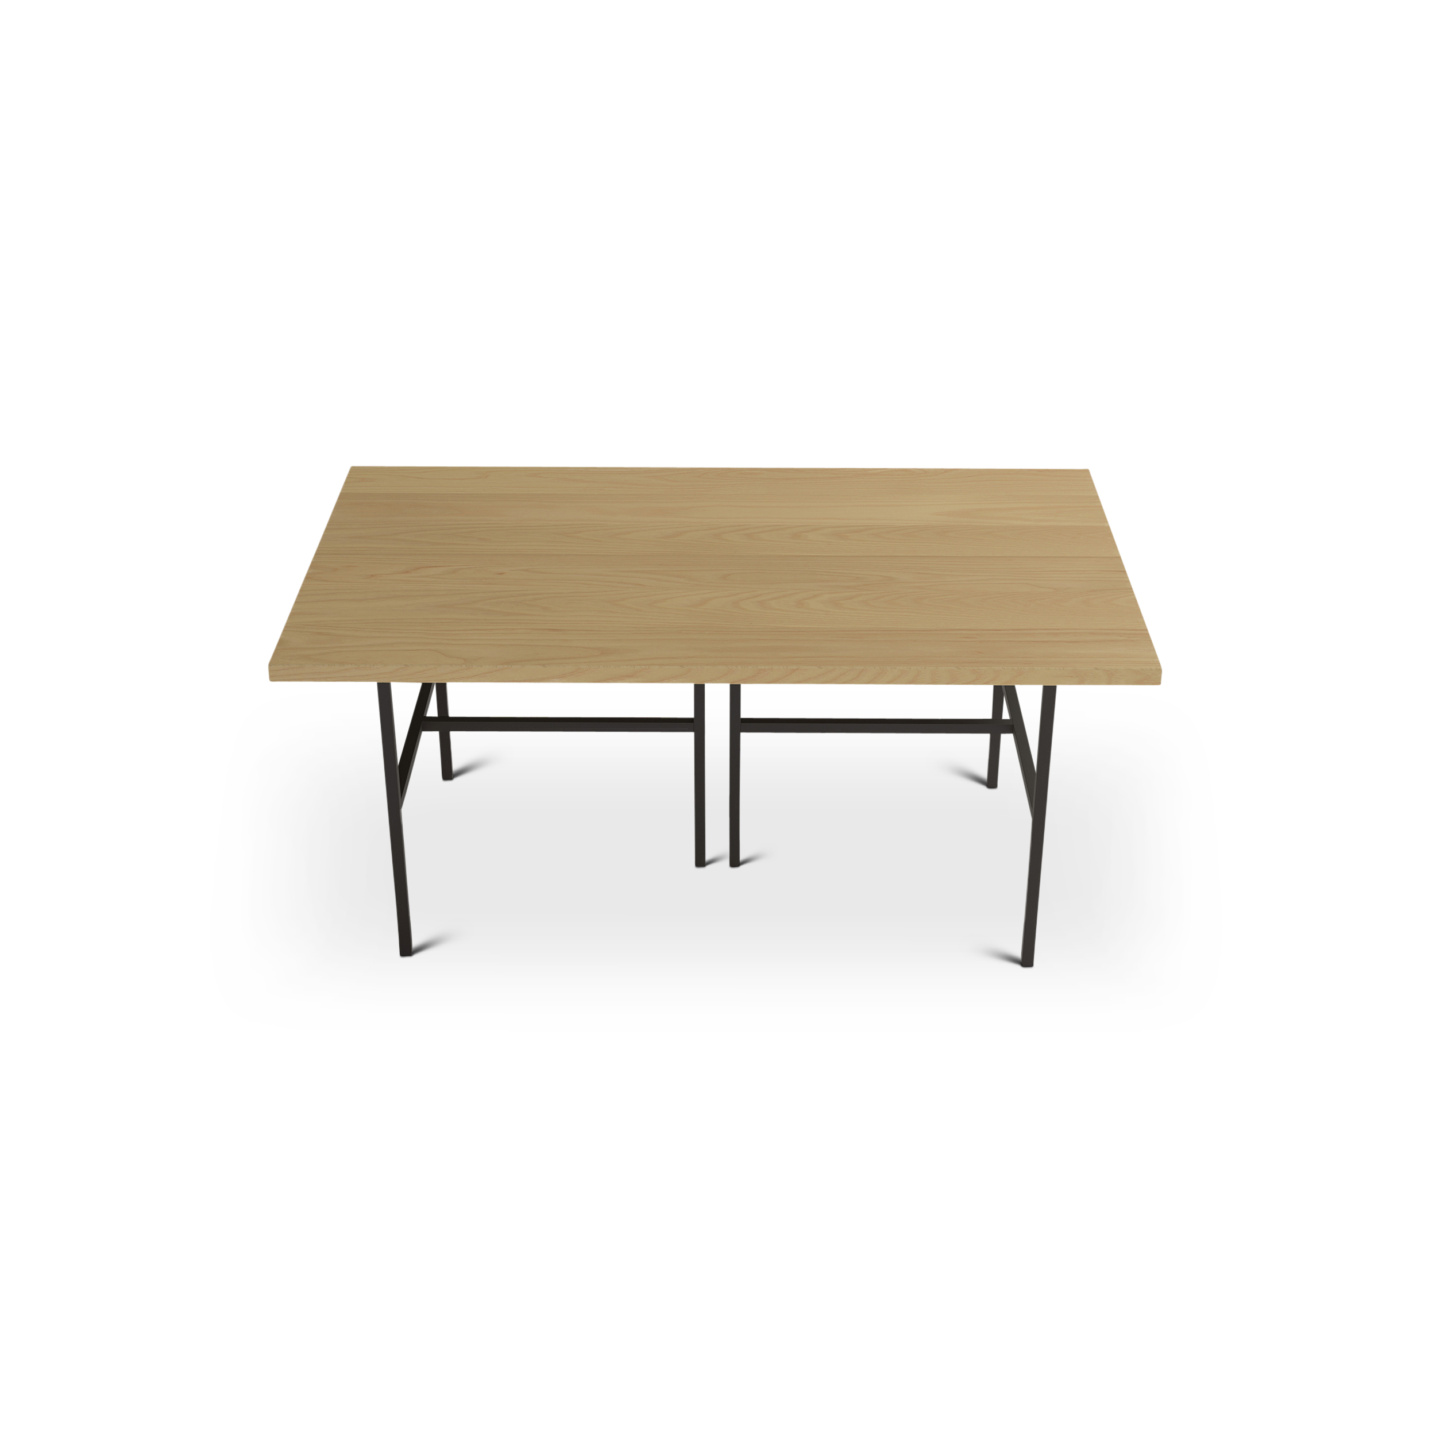 Ash kitchen table with black metal legs